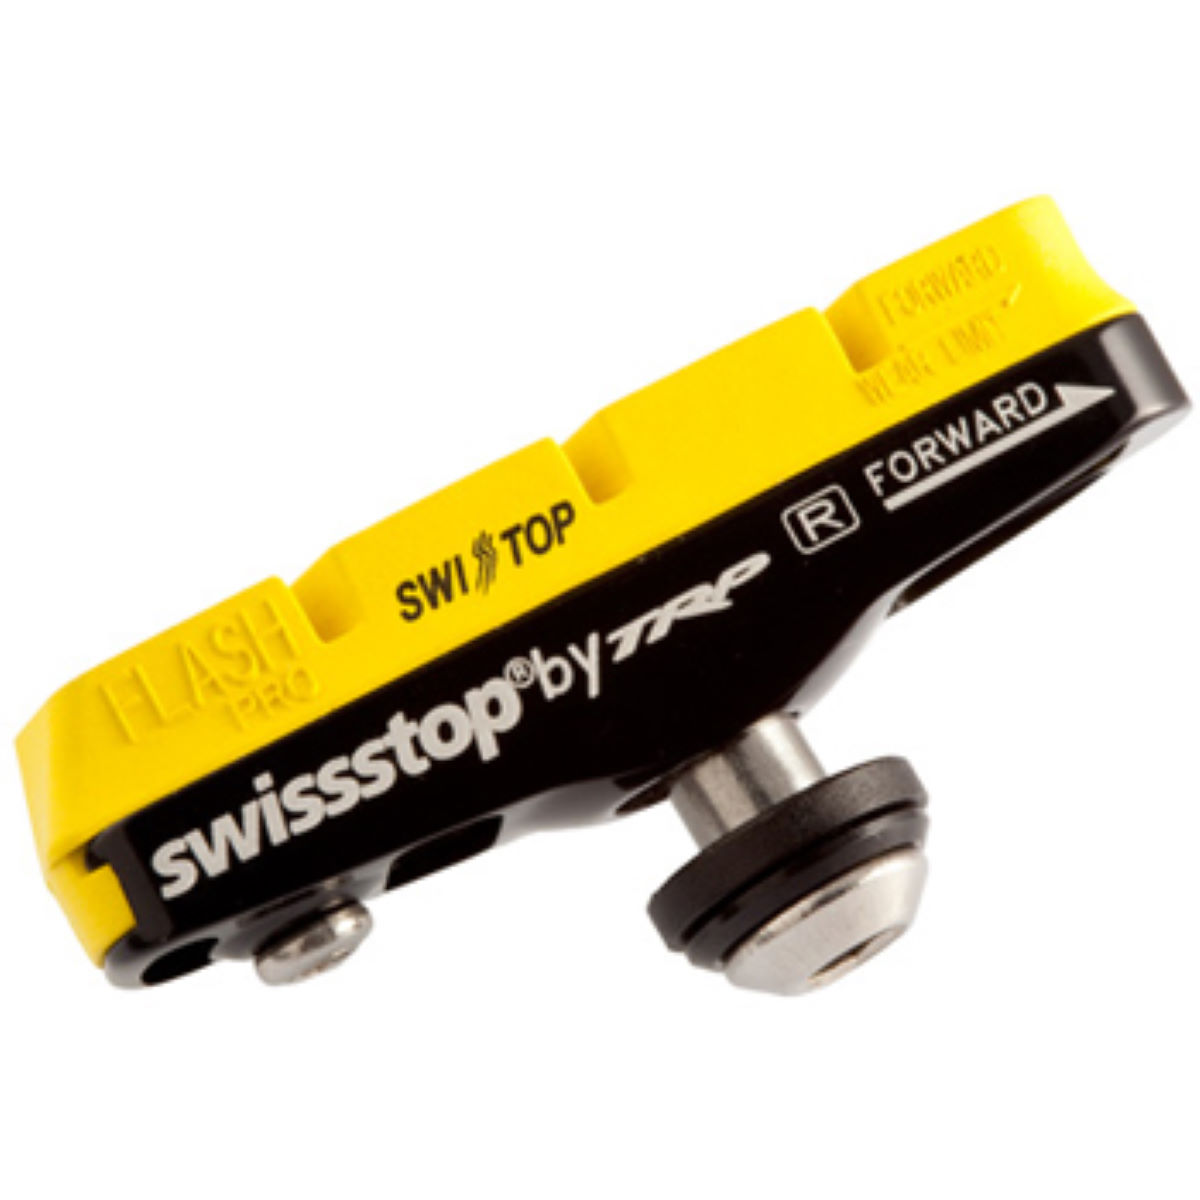 Swissstop Flash Pro Yellow (High Power) Blocks